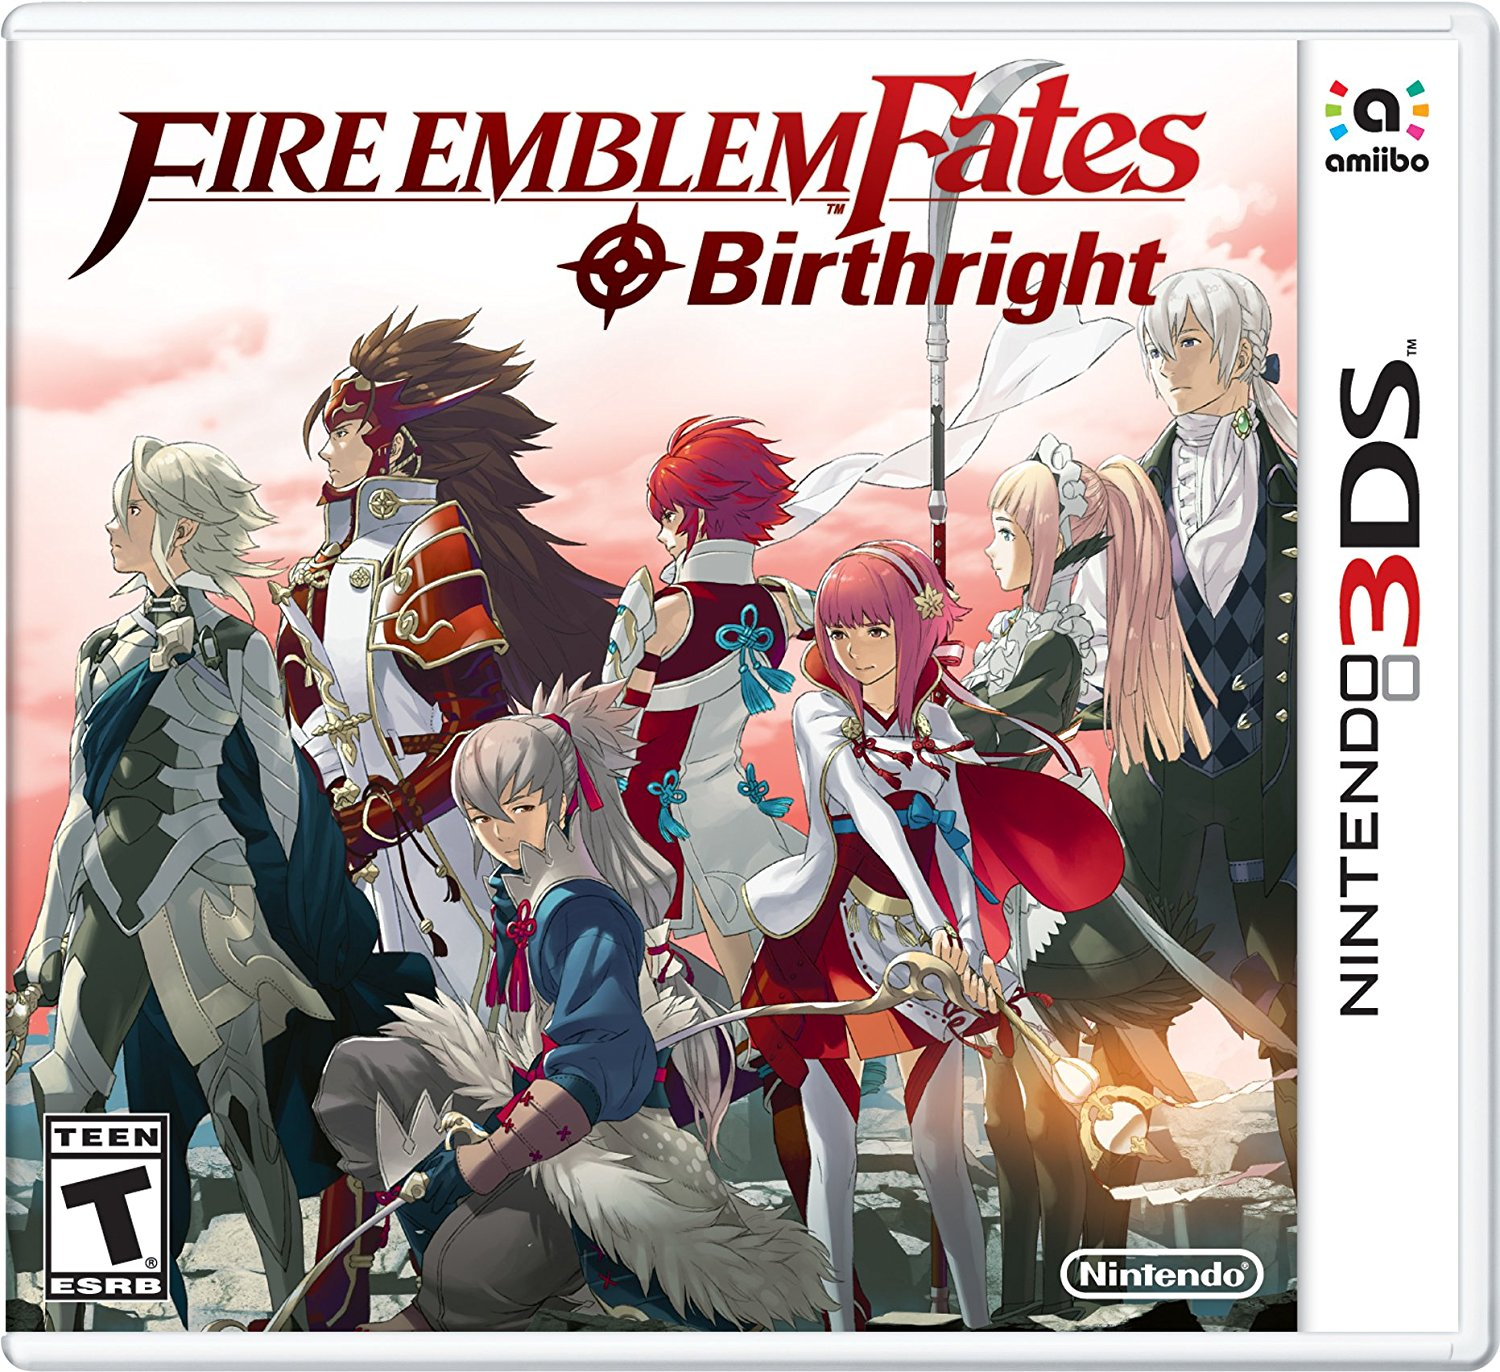 3DS: FIRE EMBLEM FATES: BIRTHRIGHT (COMPLETE)